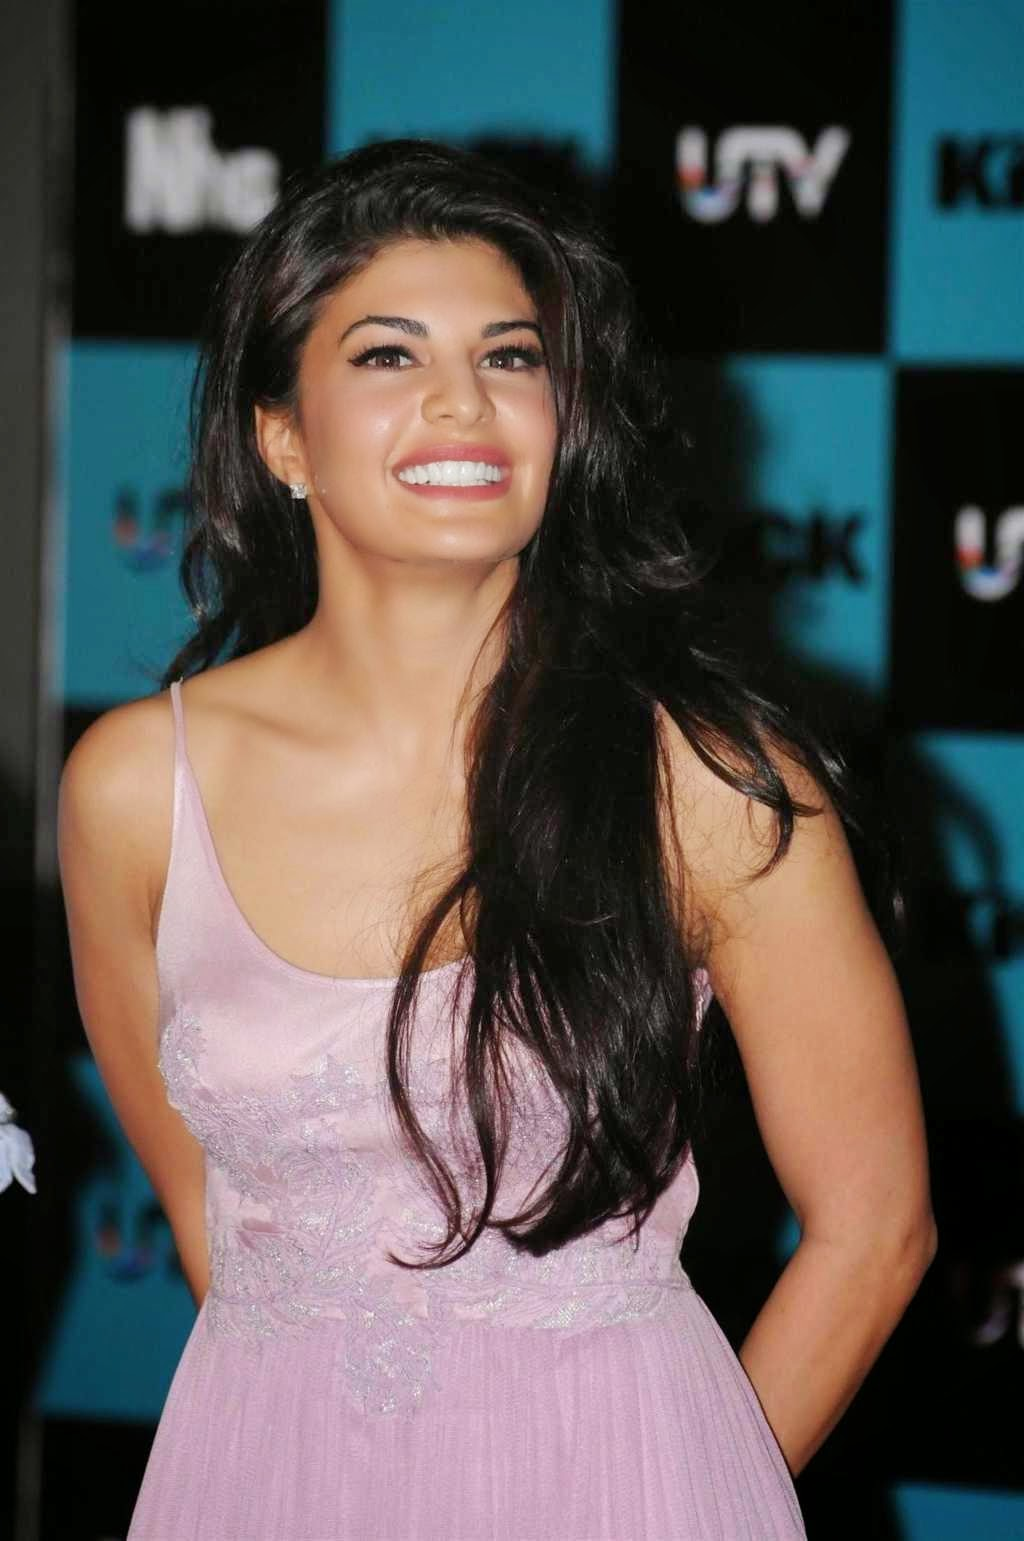 Jacqueline-Fernandez -Kick-Movie-Hot-Actress-Photos-PhotoFunMasti